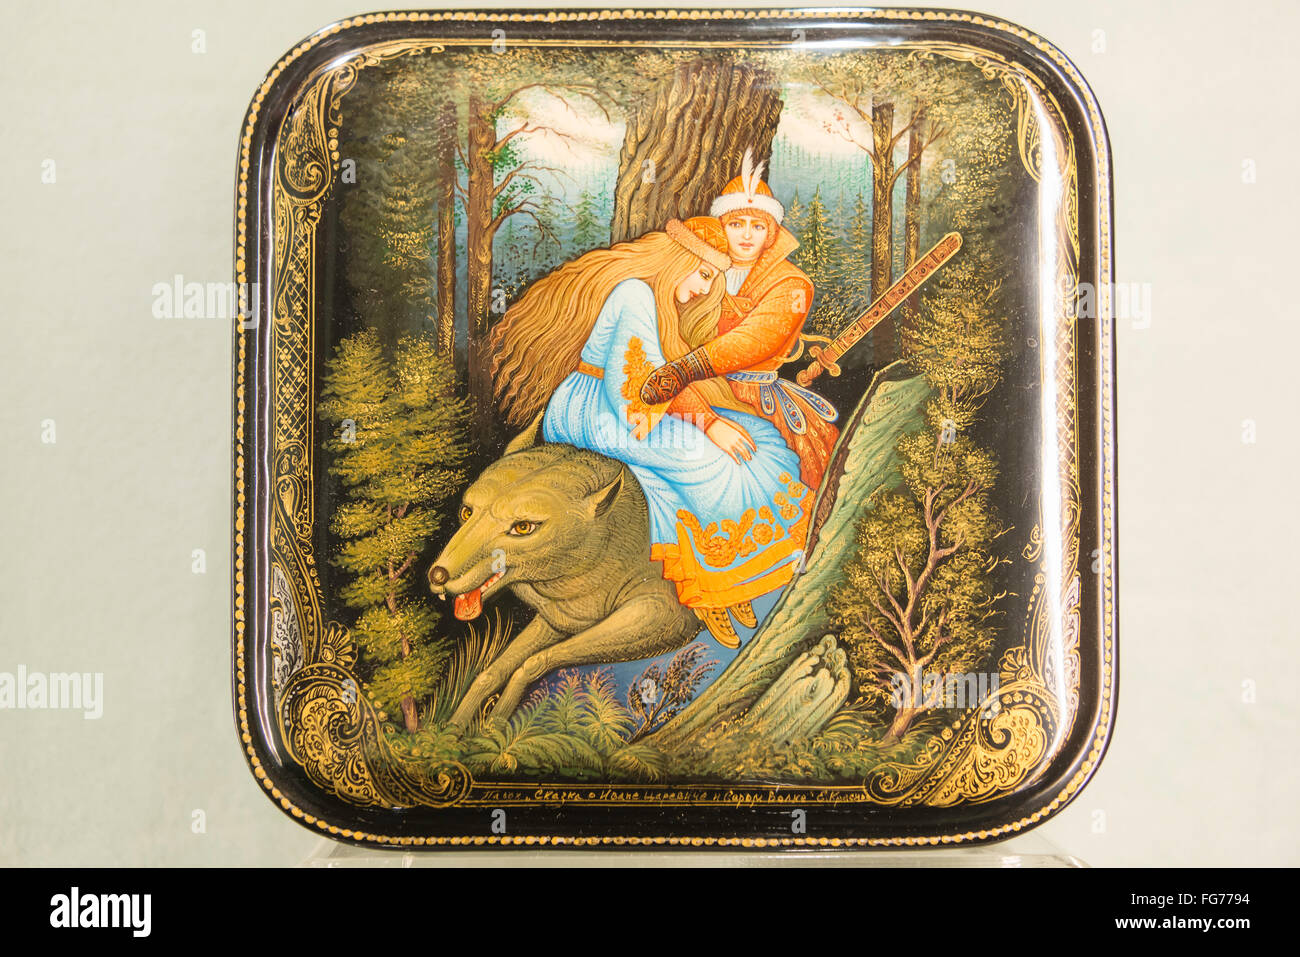 Russian souvenir lacquer box, Saint Petersburg, Northwestern Region, Russian Federation - Stock Image